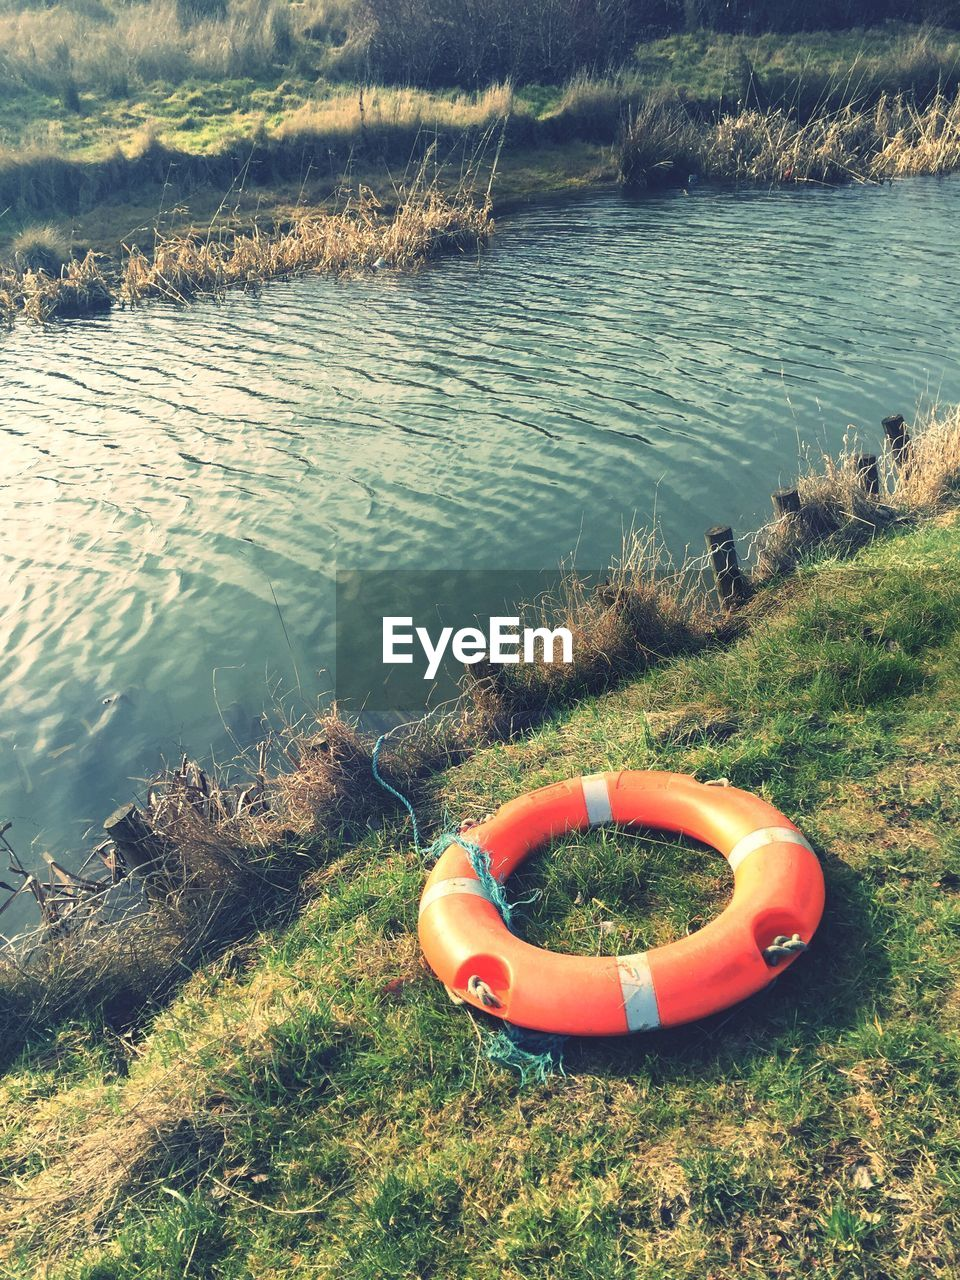 water, no people, nature, day, tranquility, lake, safety, protection, orange color, plant, inflatable, tranquil scene, life belt, security, tube, beauty in nature, grass, outdoors